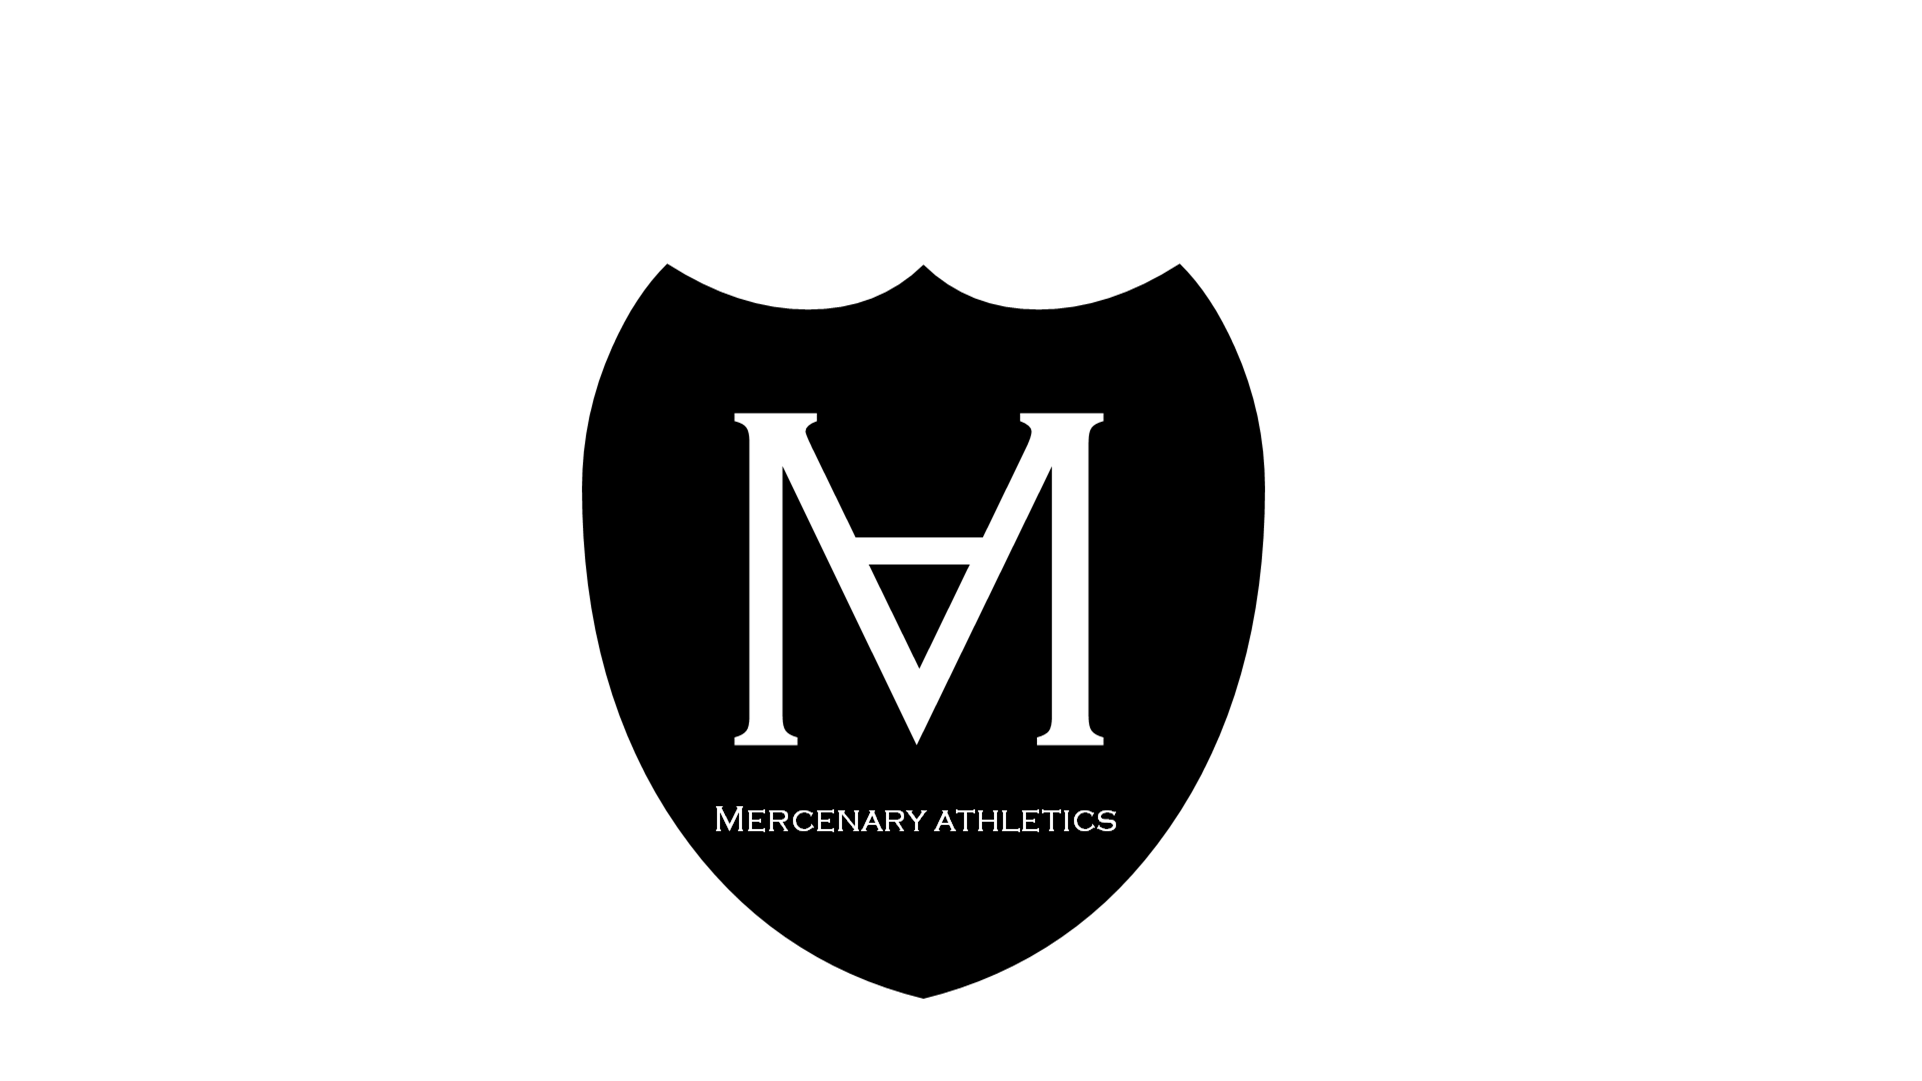 Mercenary Athletics (Black shield) Image